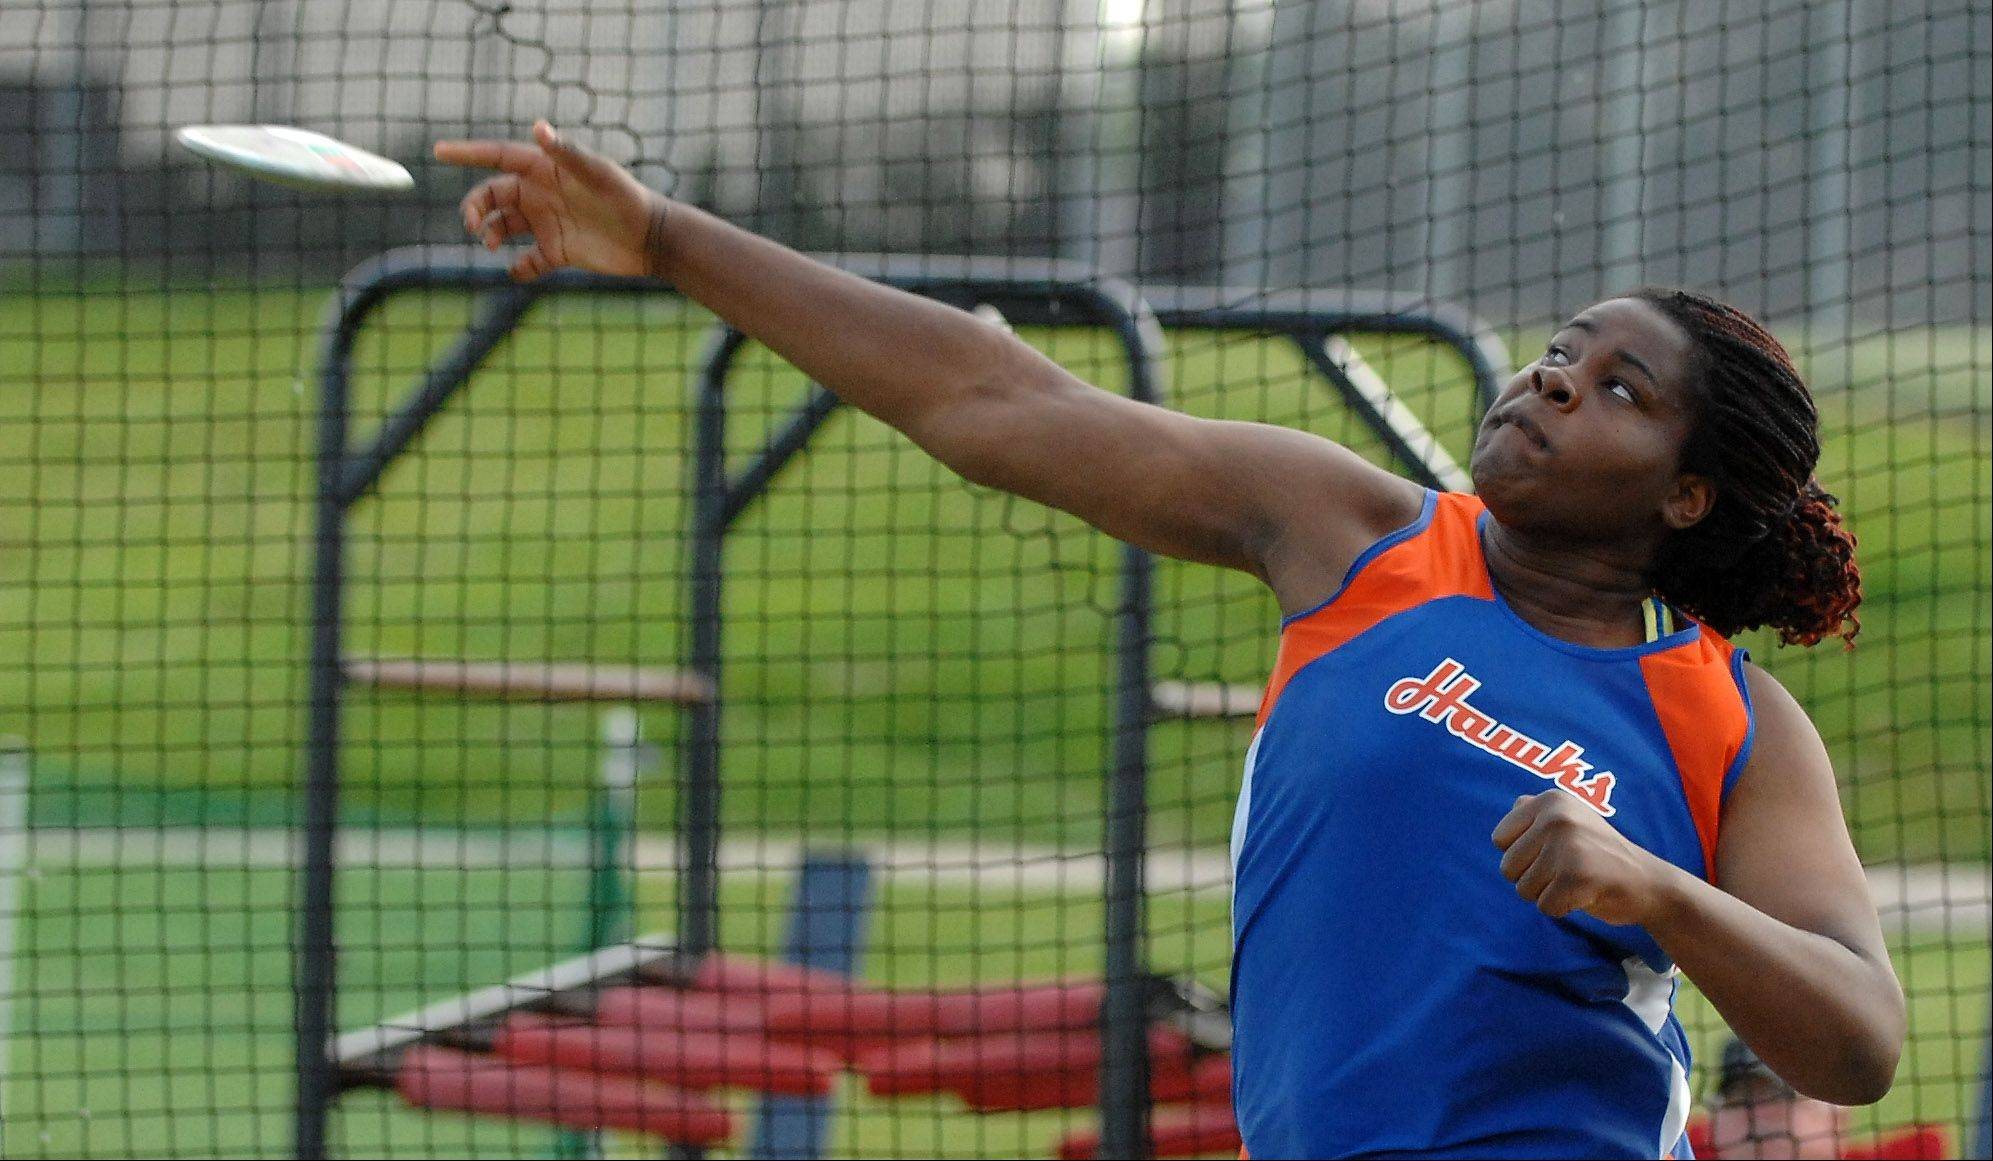 Hoffman Estates' Banke Oginni, shown here in last season's state meet, is in the thick of things for another medal performance this weekend.